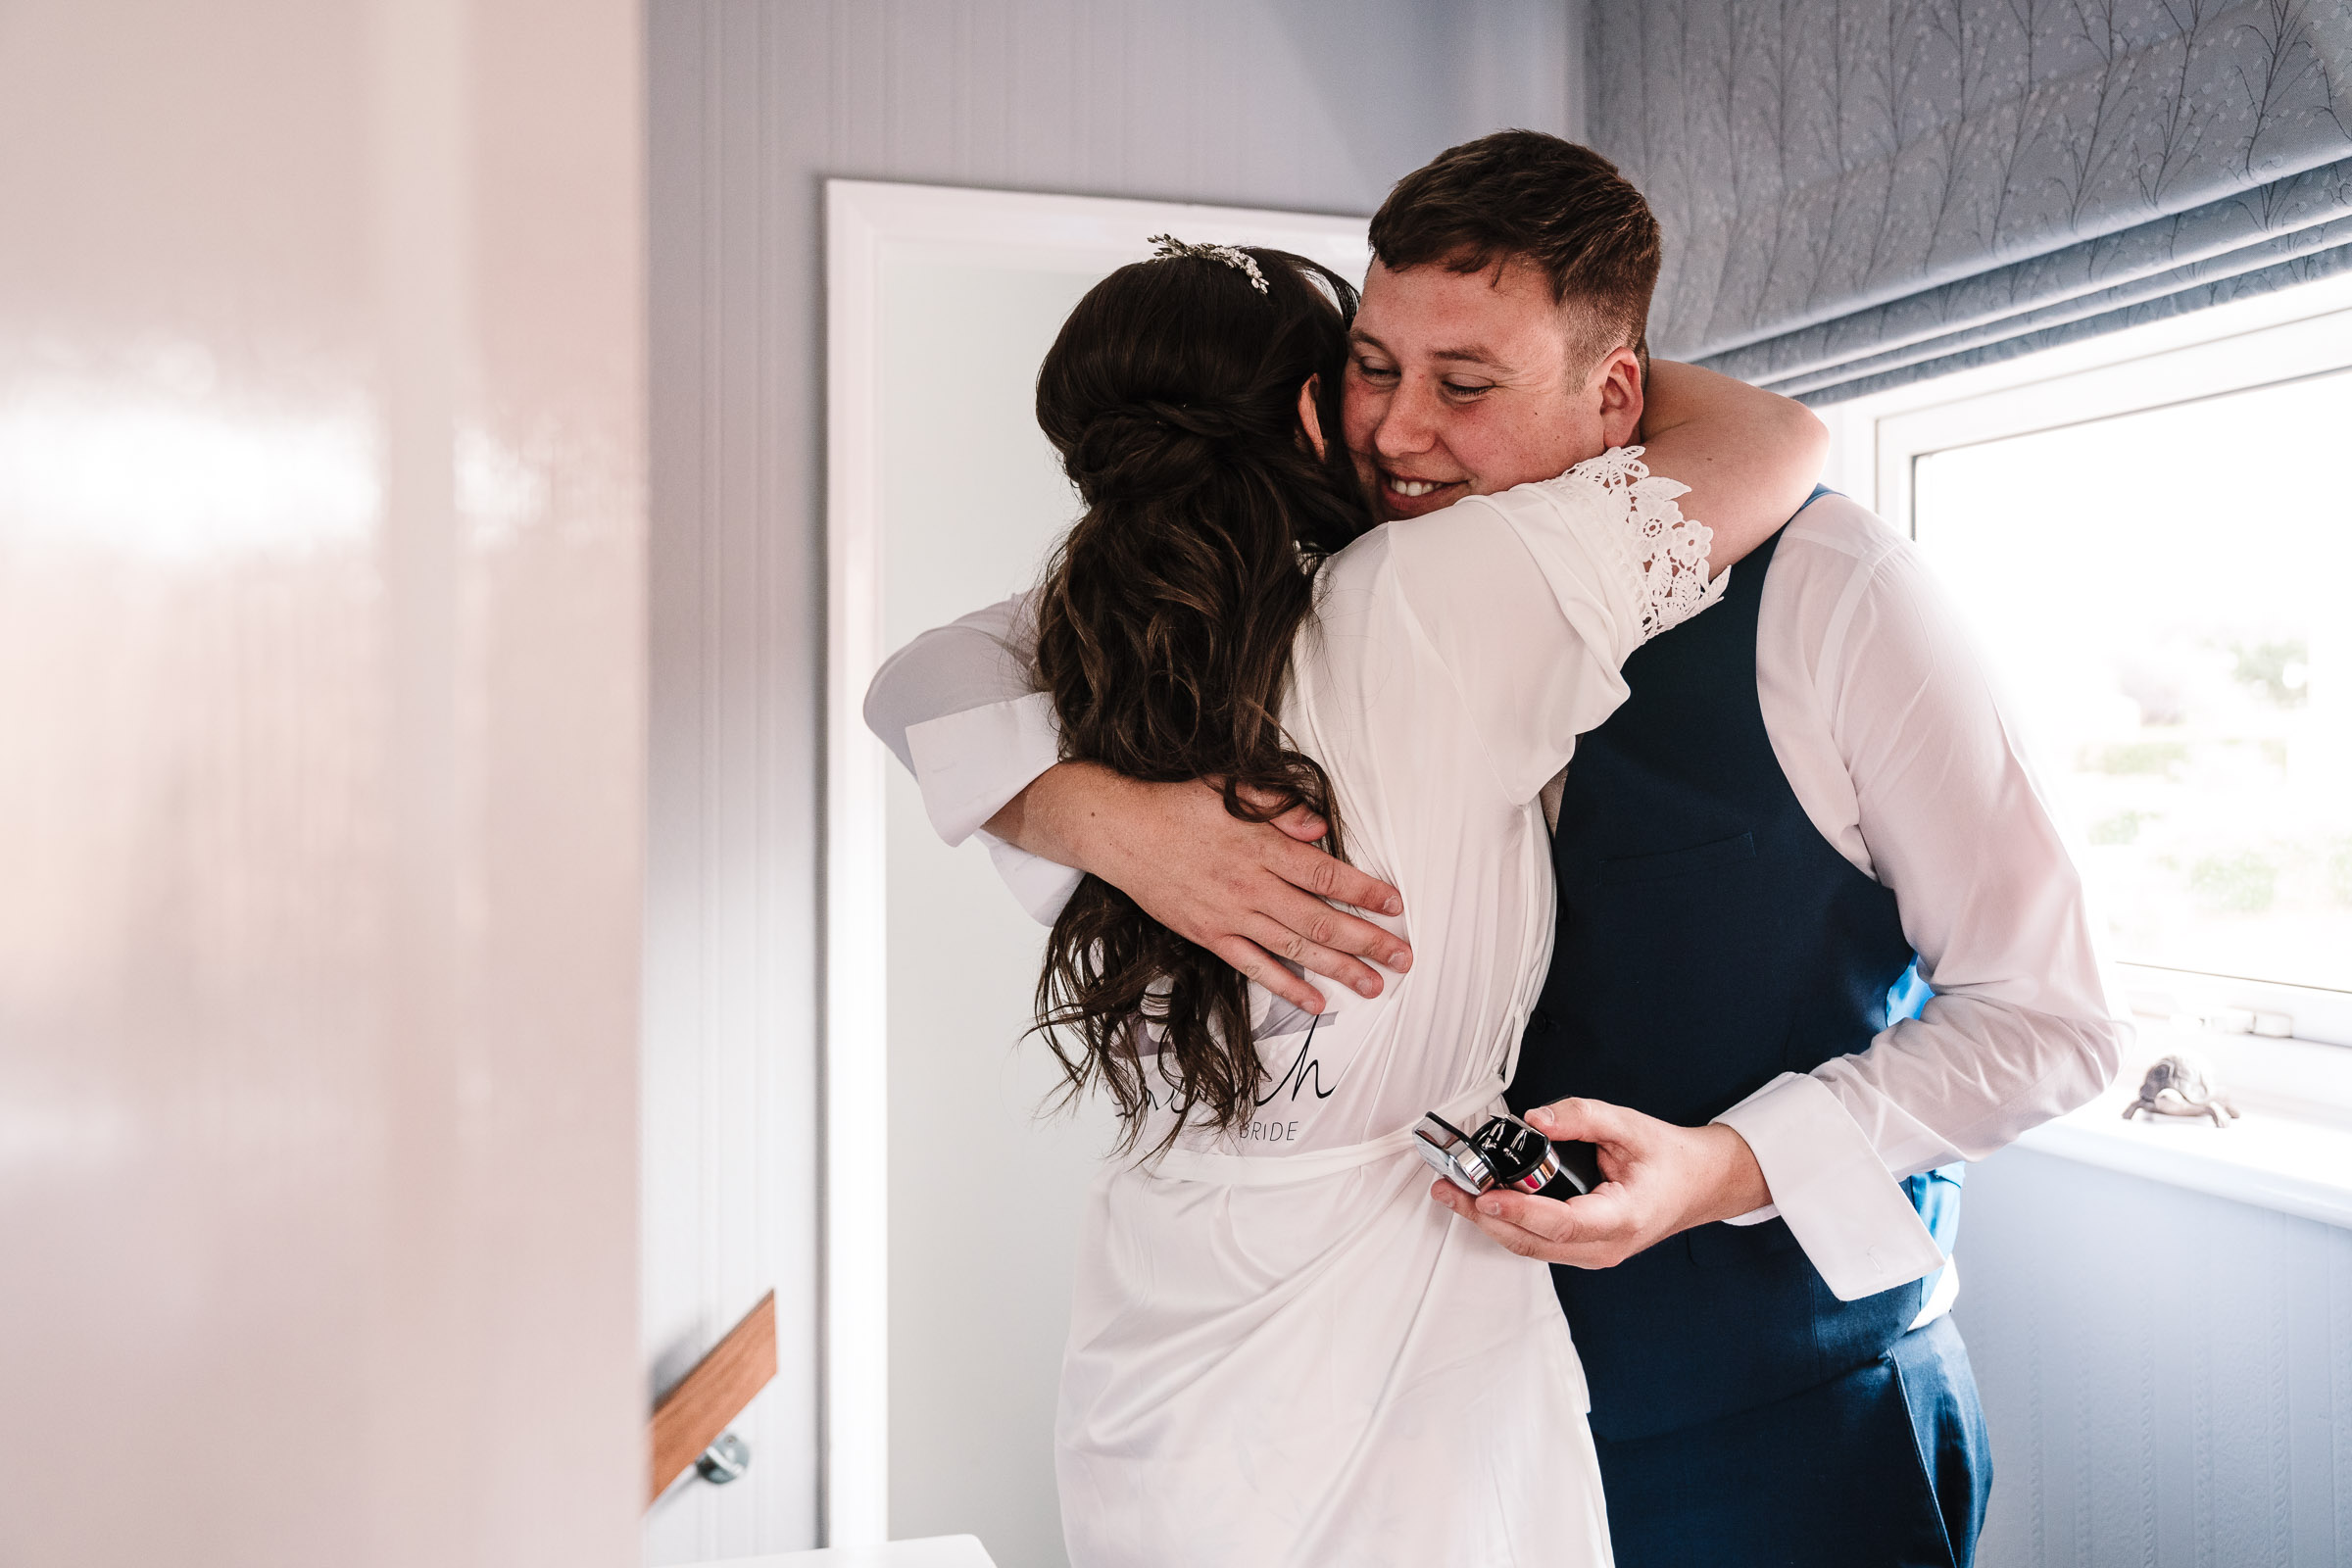 bride hugging brother after giving him a gift on wedding morning